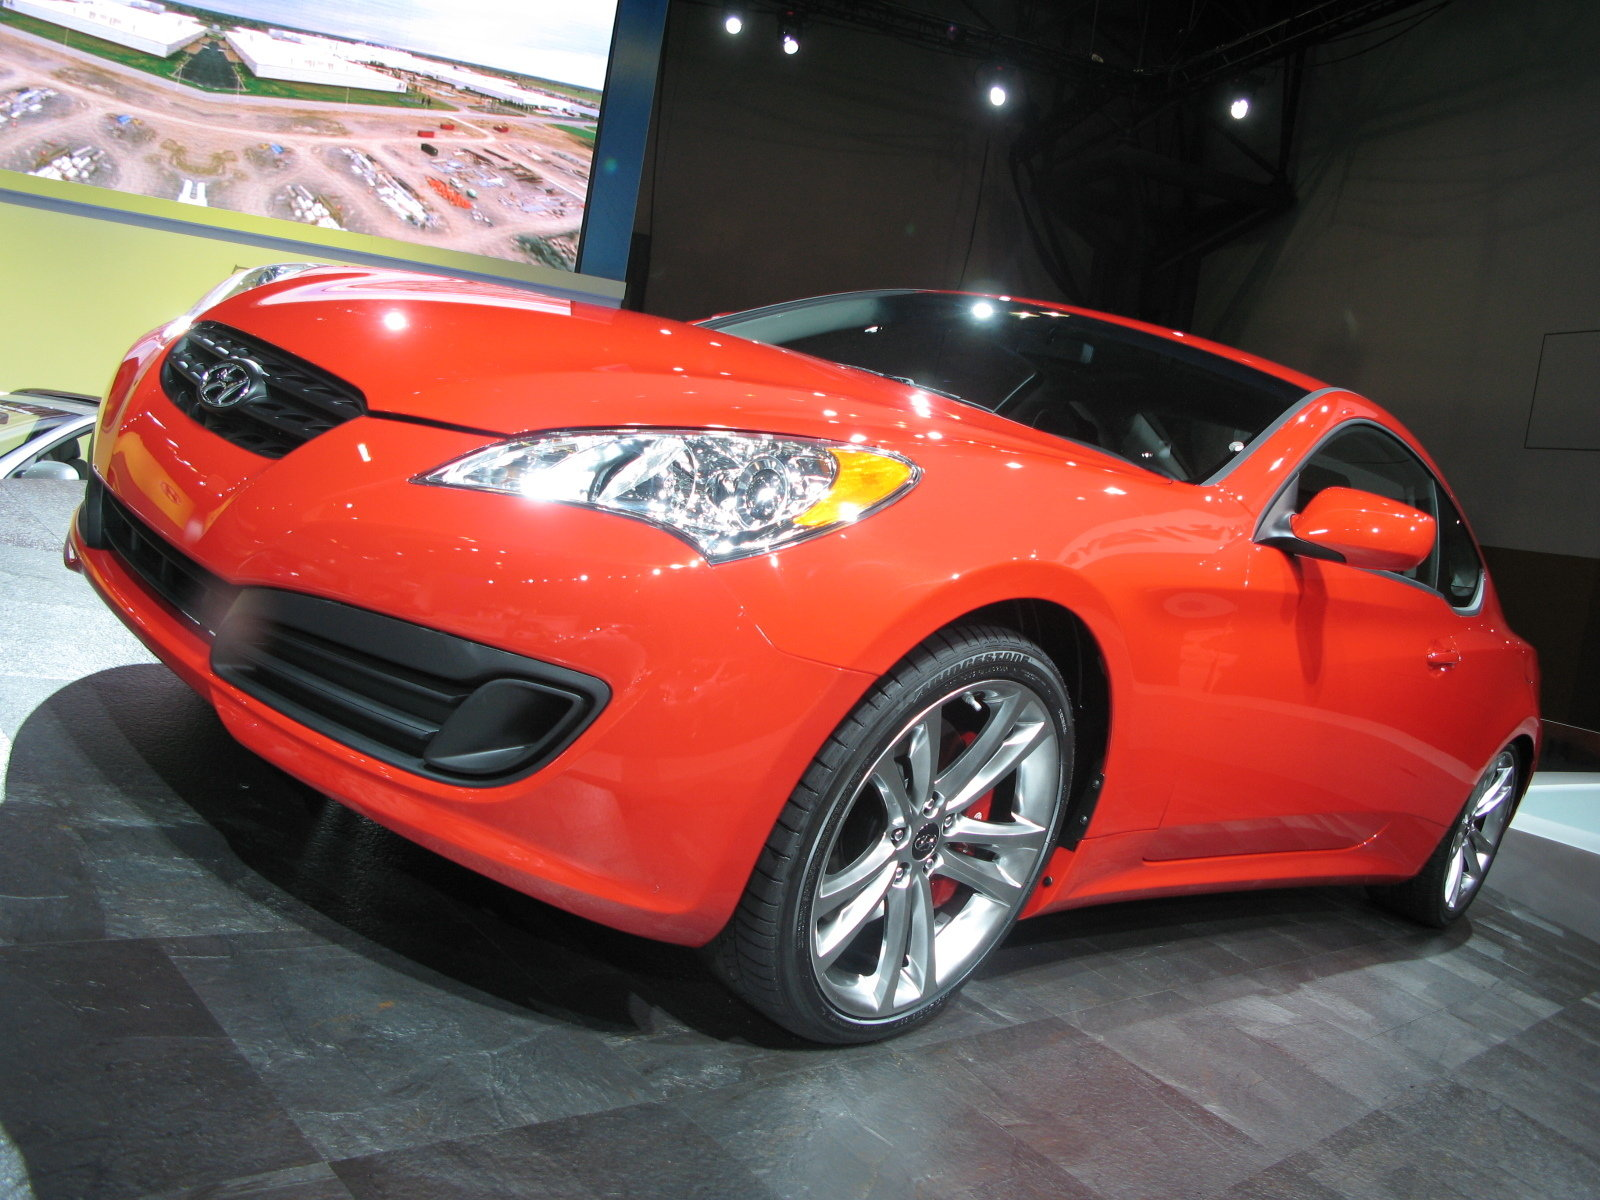 2010 hyundai genesis coupe picture 239519 car review top speed. Black Bedroom Furniture Sets. Home Design Ideas